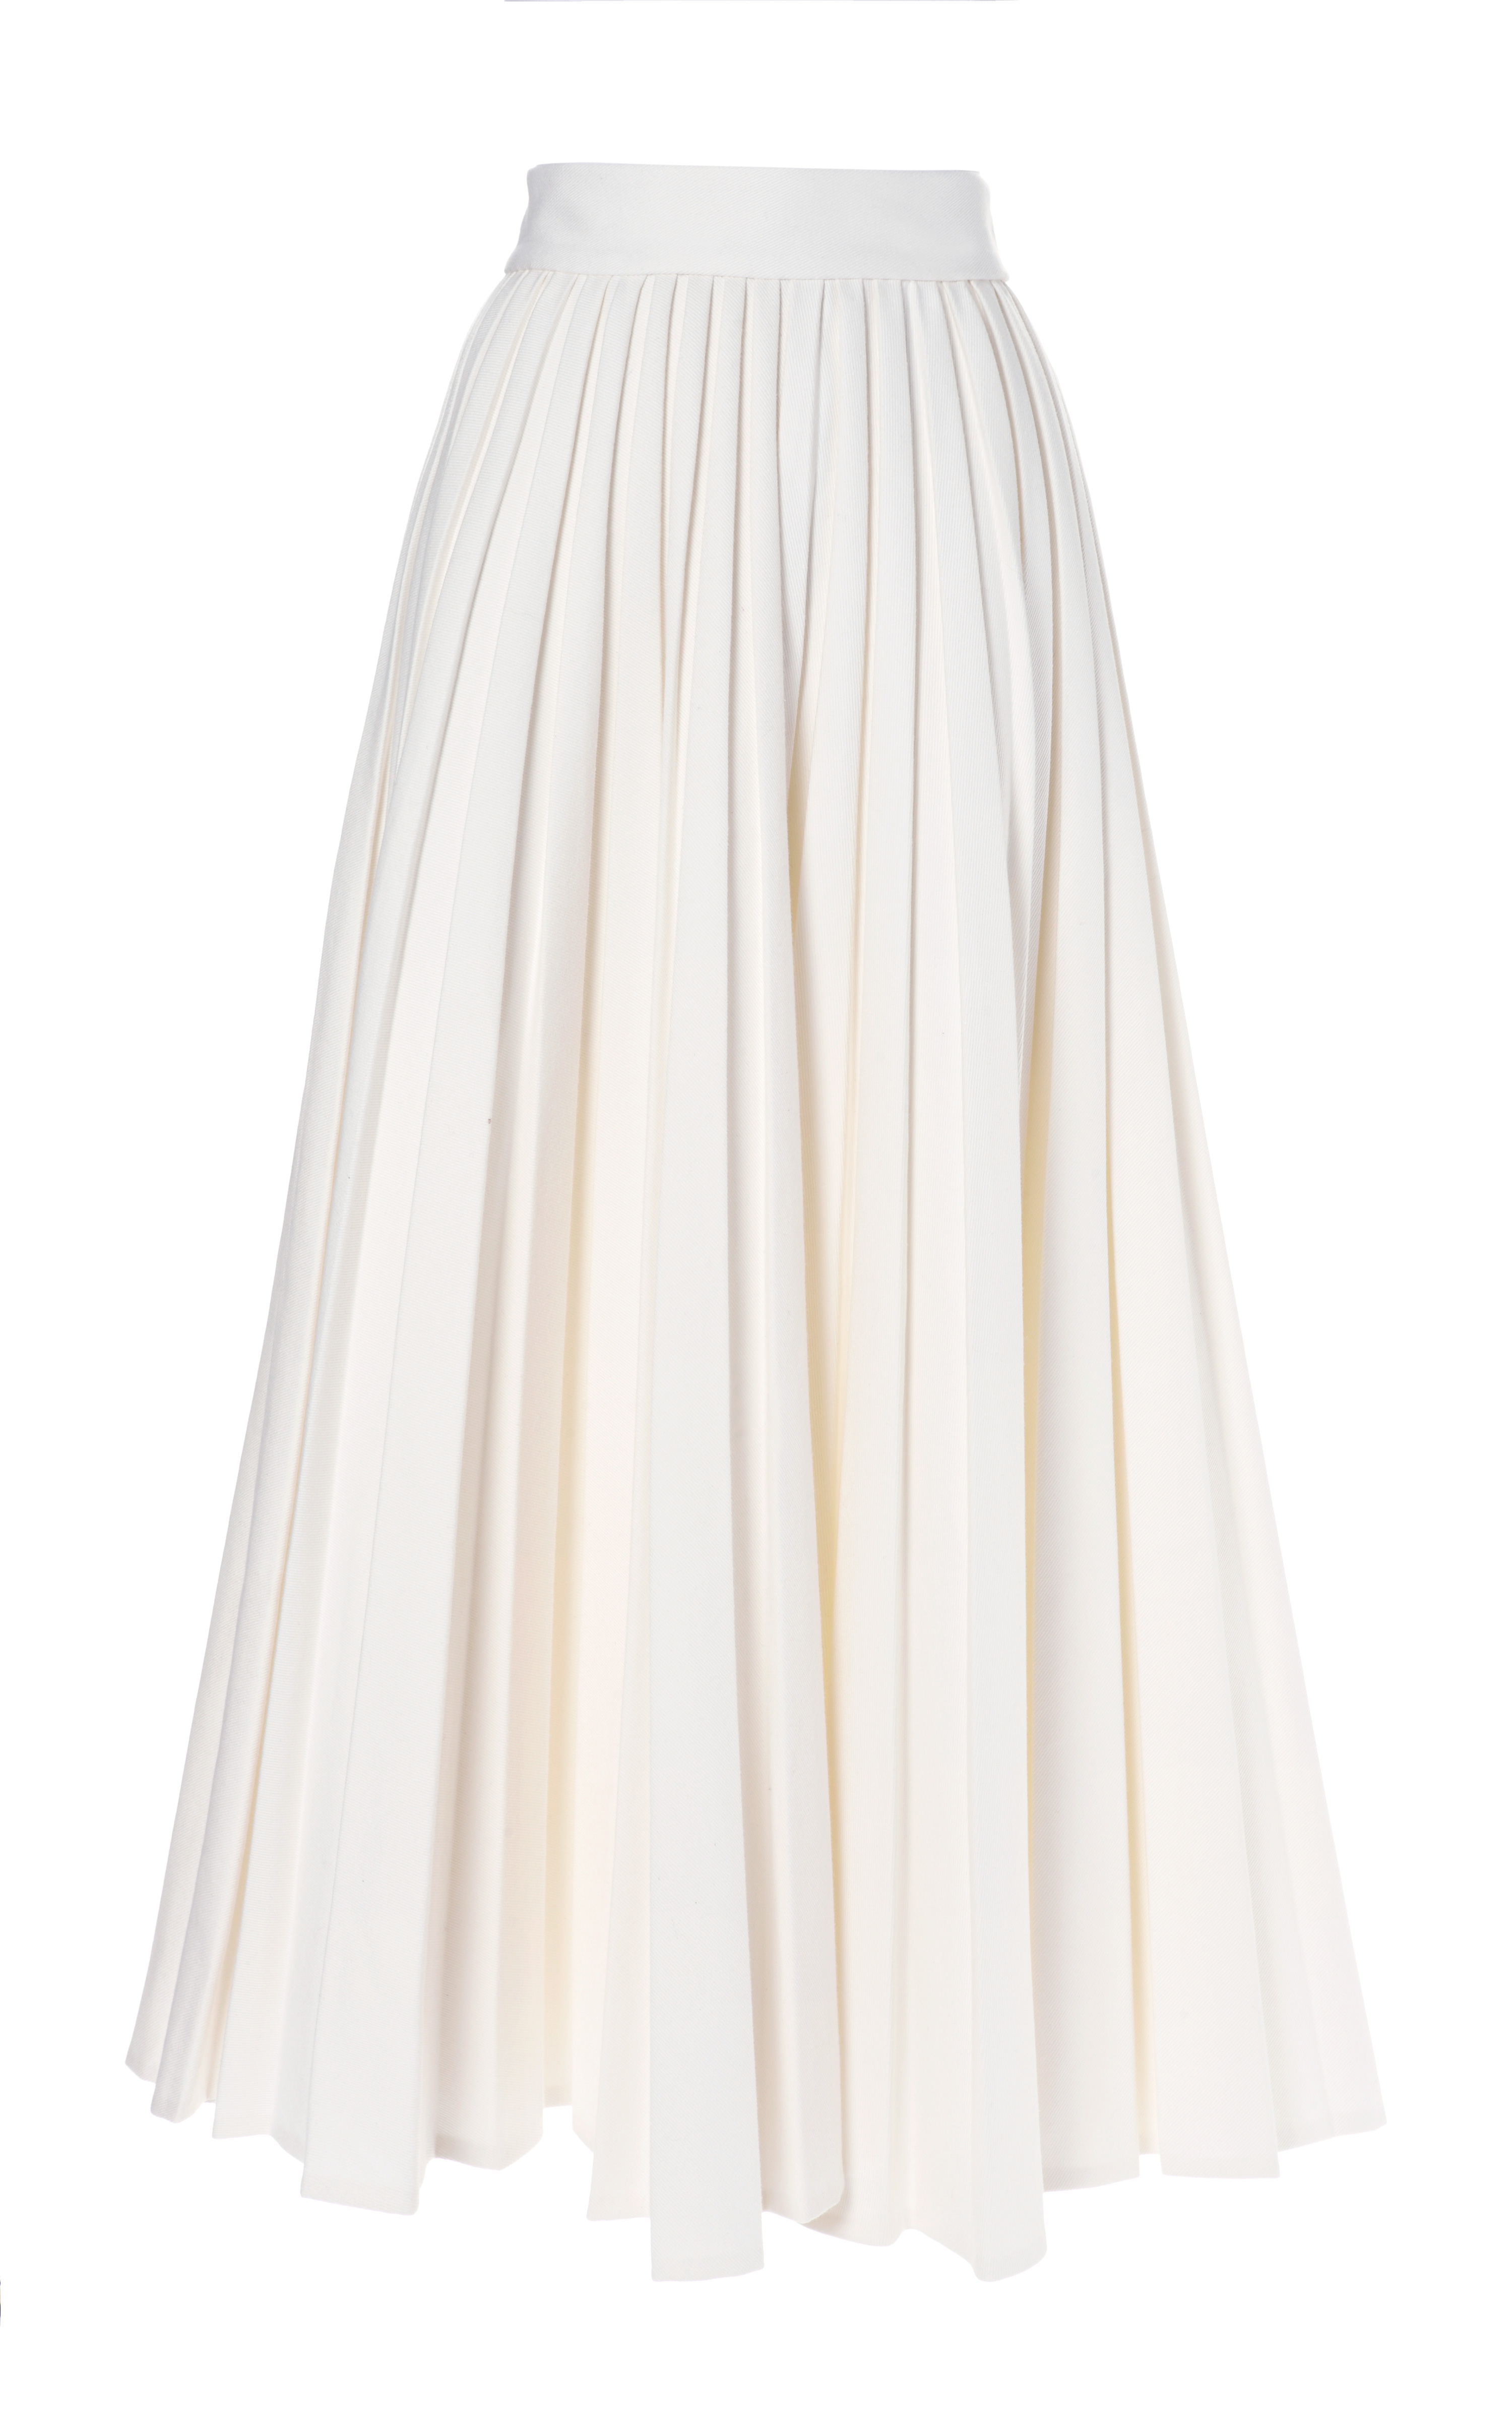 Emilia wickstead Pleated Skirt in White | Lyst